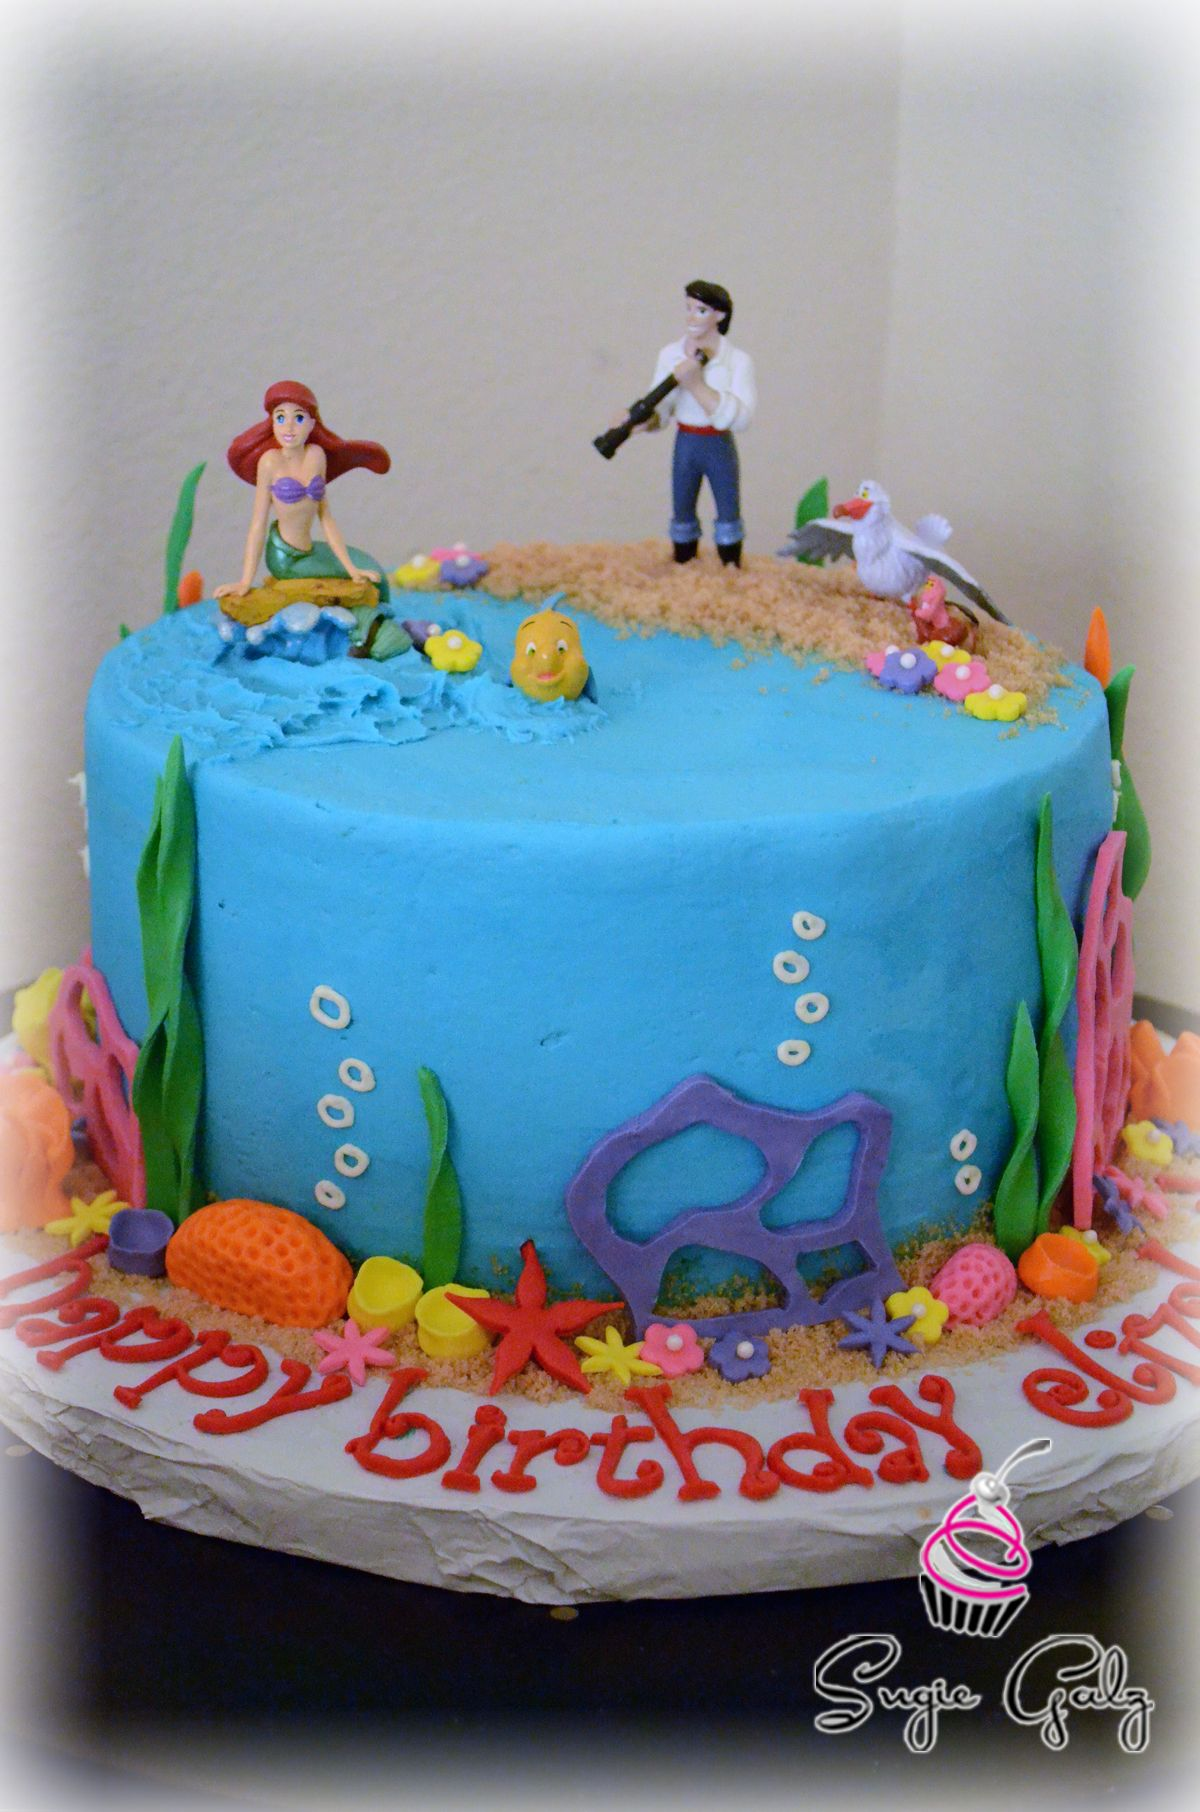 The Little Mermaid Birthday Cake In Austin Texas By SugieGalz